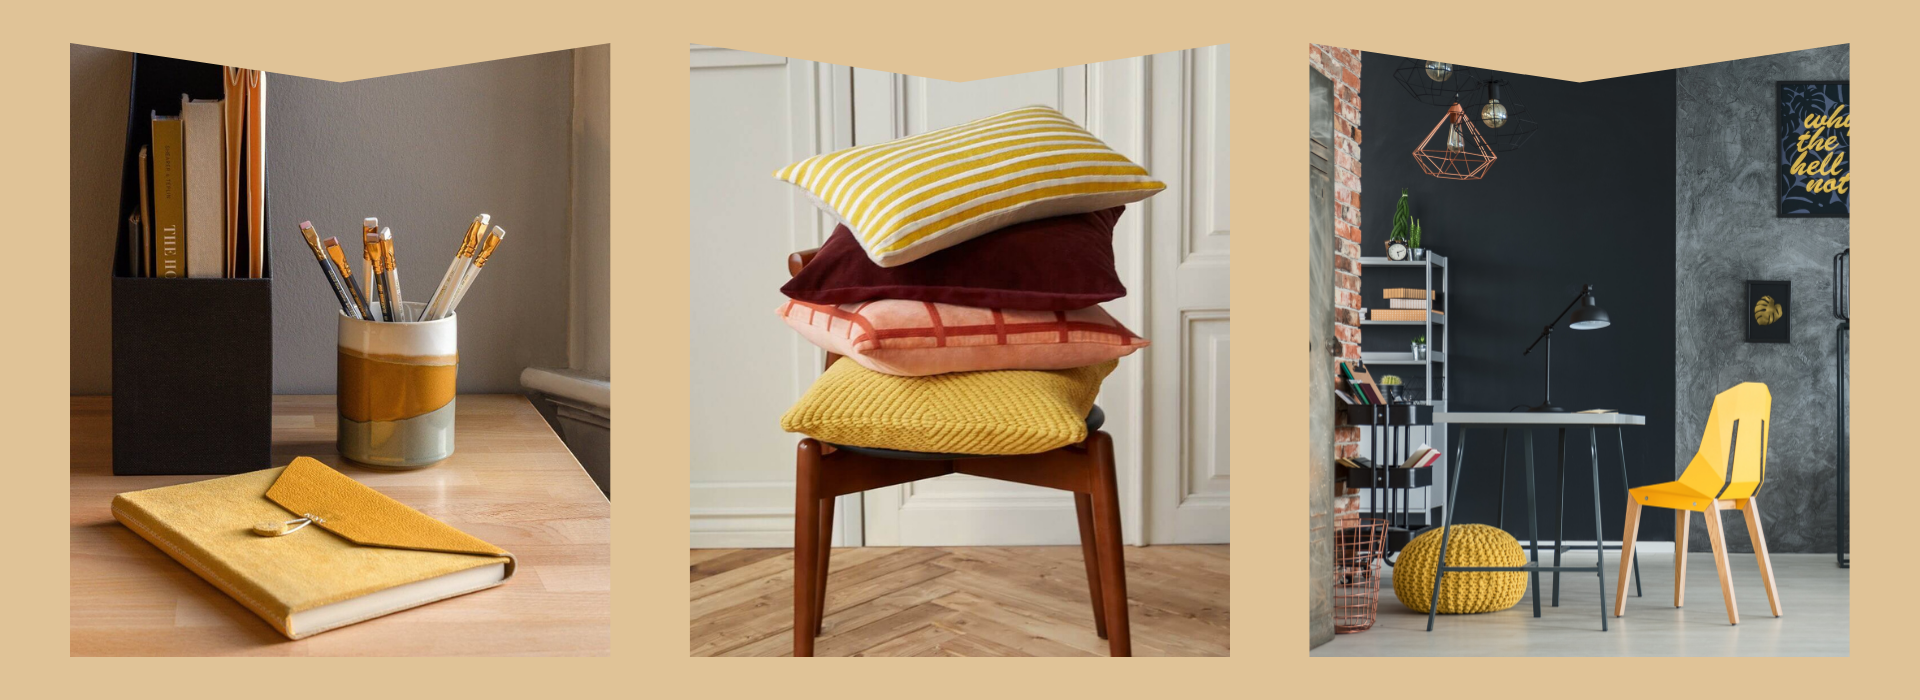 Stationary, Stack of Pillows, Dining Set